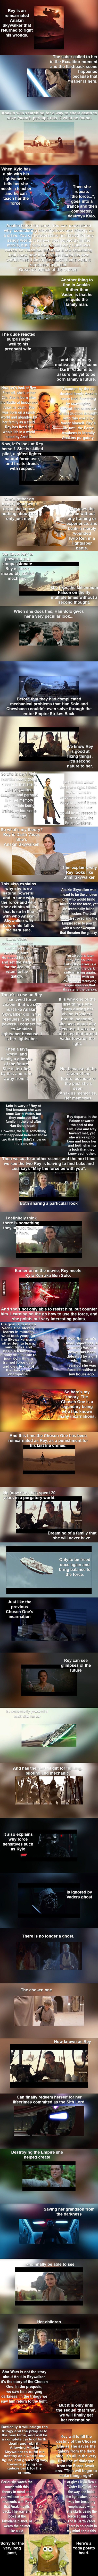 I've got a cool theory for you guys, what if Rey is not who she think she is? *Warning, SPOILERS! Duh..*